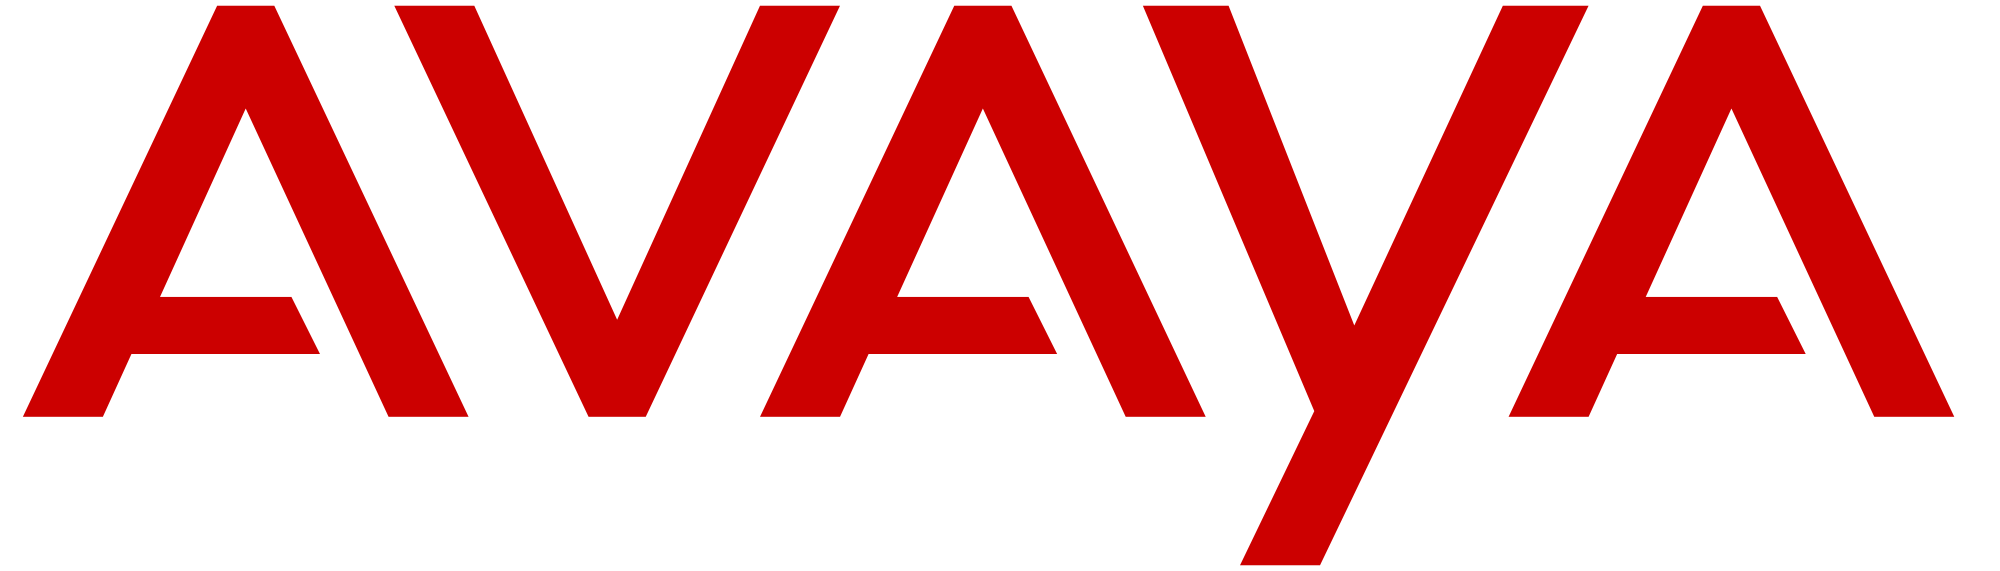 Unified Communications Provider - Avaya